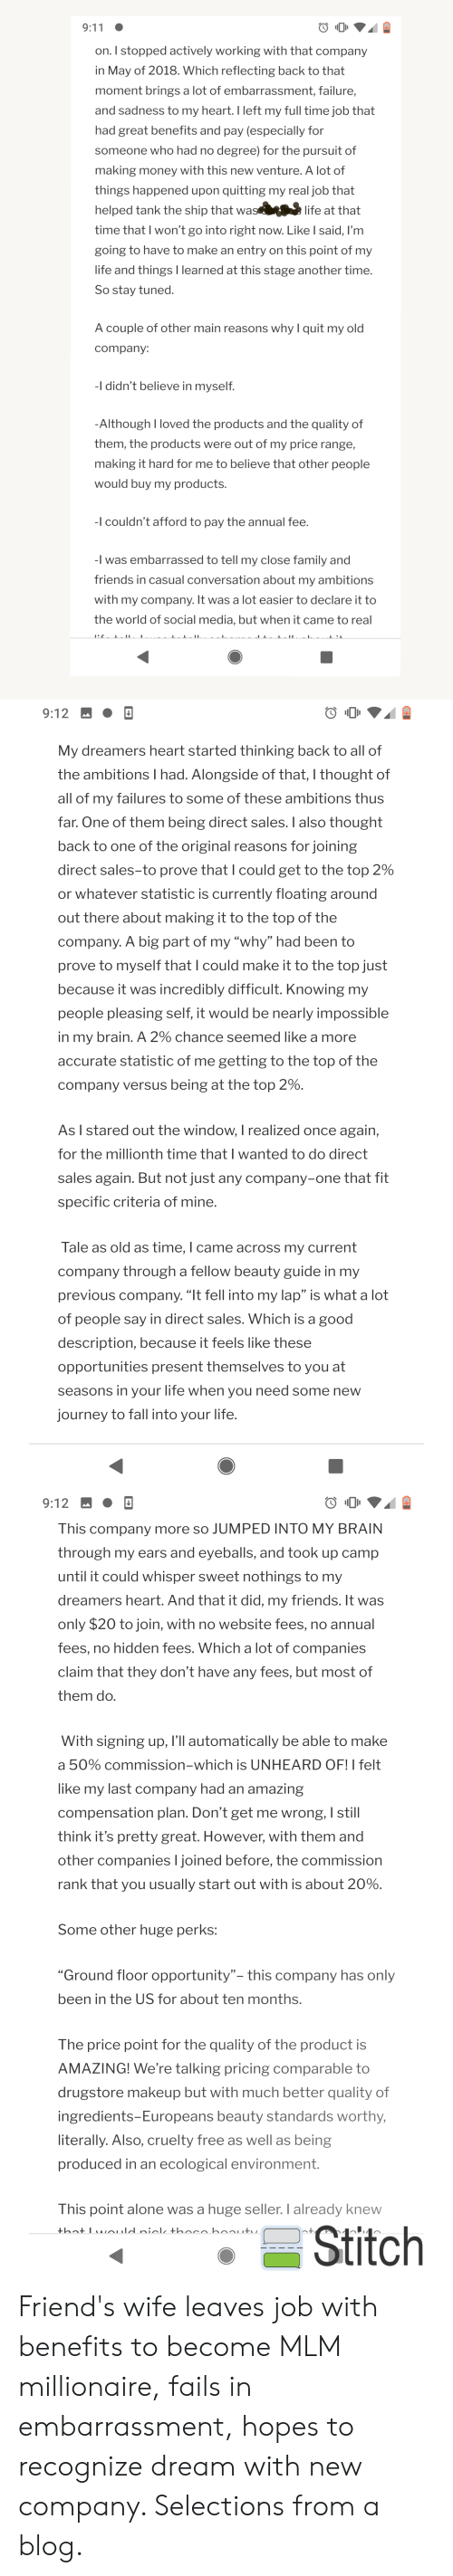 """9/11, Being Alone, and Fall: 9:11  on. I stopped actively working with that company  in May of 2018. Which reflecting back to that  moment brings a lot of embarrassment, failure,  and sadness to my heart. I left my full time job that  had great benefits and pay (especially for  someone who had no degree) for the pursuit of  making money with this new venture. A lot of  things happened upon quitting my real job that  helped tank the ship that was  life at that  time that I won't go into right now. Like I said, I'm  going to have to make an entry on this point of my  life and things I learned at this stage another time.  So stay tuned.  A couple of other main reasons why I quit my old  company:  -I didn't believe in myself.  -Although I loved the products and the quality of  them, the products were out of my price range,  making it hard for me to believe that other people  would buy my products.  -I couldn't afford to pay the annual fee.  -I was embarrassed to tell my close family and  friends in casual conversation about my ambitions  with my company. It was a lot easier to declare it to  the world of social media, but when it came to real  Ti T  9:12  My dreamers heart started thinking back to all of  the ambitionsI had. Alongside of that, I thought of  all of my failures to some of these ambitions thus  far. One of them being direct sales. I also thought  back to one of the original reasons for joining  direct sales-to prove that I could get to the top 2 %  or whatever statistic is currently floating around  out there about making it to the top of the  company. A big part of my """"why"""" had been to  prove to myself that I could make it to the top just  because it was incredibly difficult. Knowing my  people pleasing self, it would be nearly impossible  in my brain. A 2% chance seemed like a more  accurate statistic of me getting to the top of the  company versus being at the top 2 %.  As I stared out the window, I realized once again,  for the millionth time that I wa"""